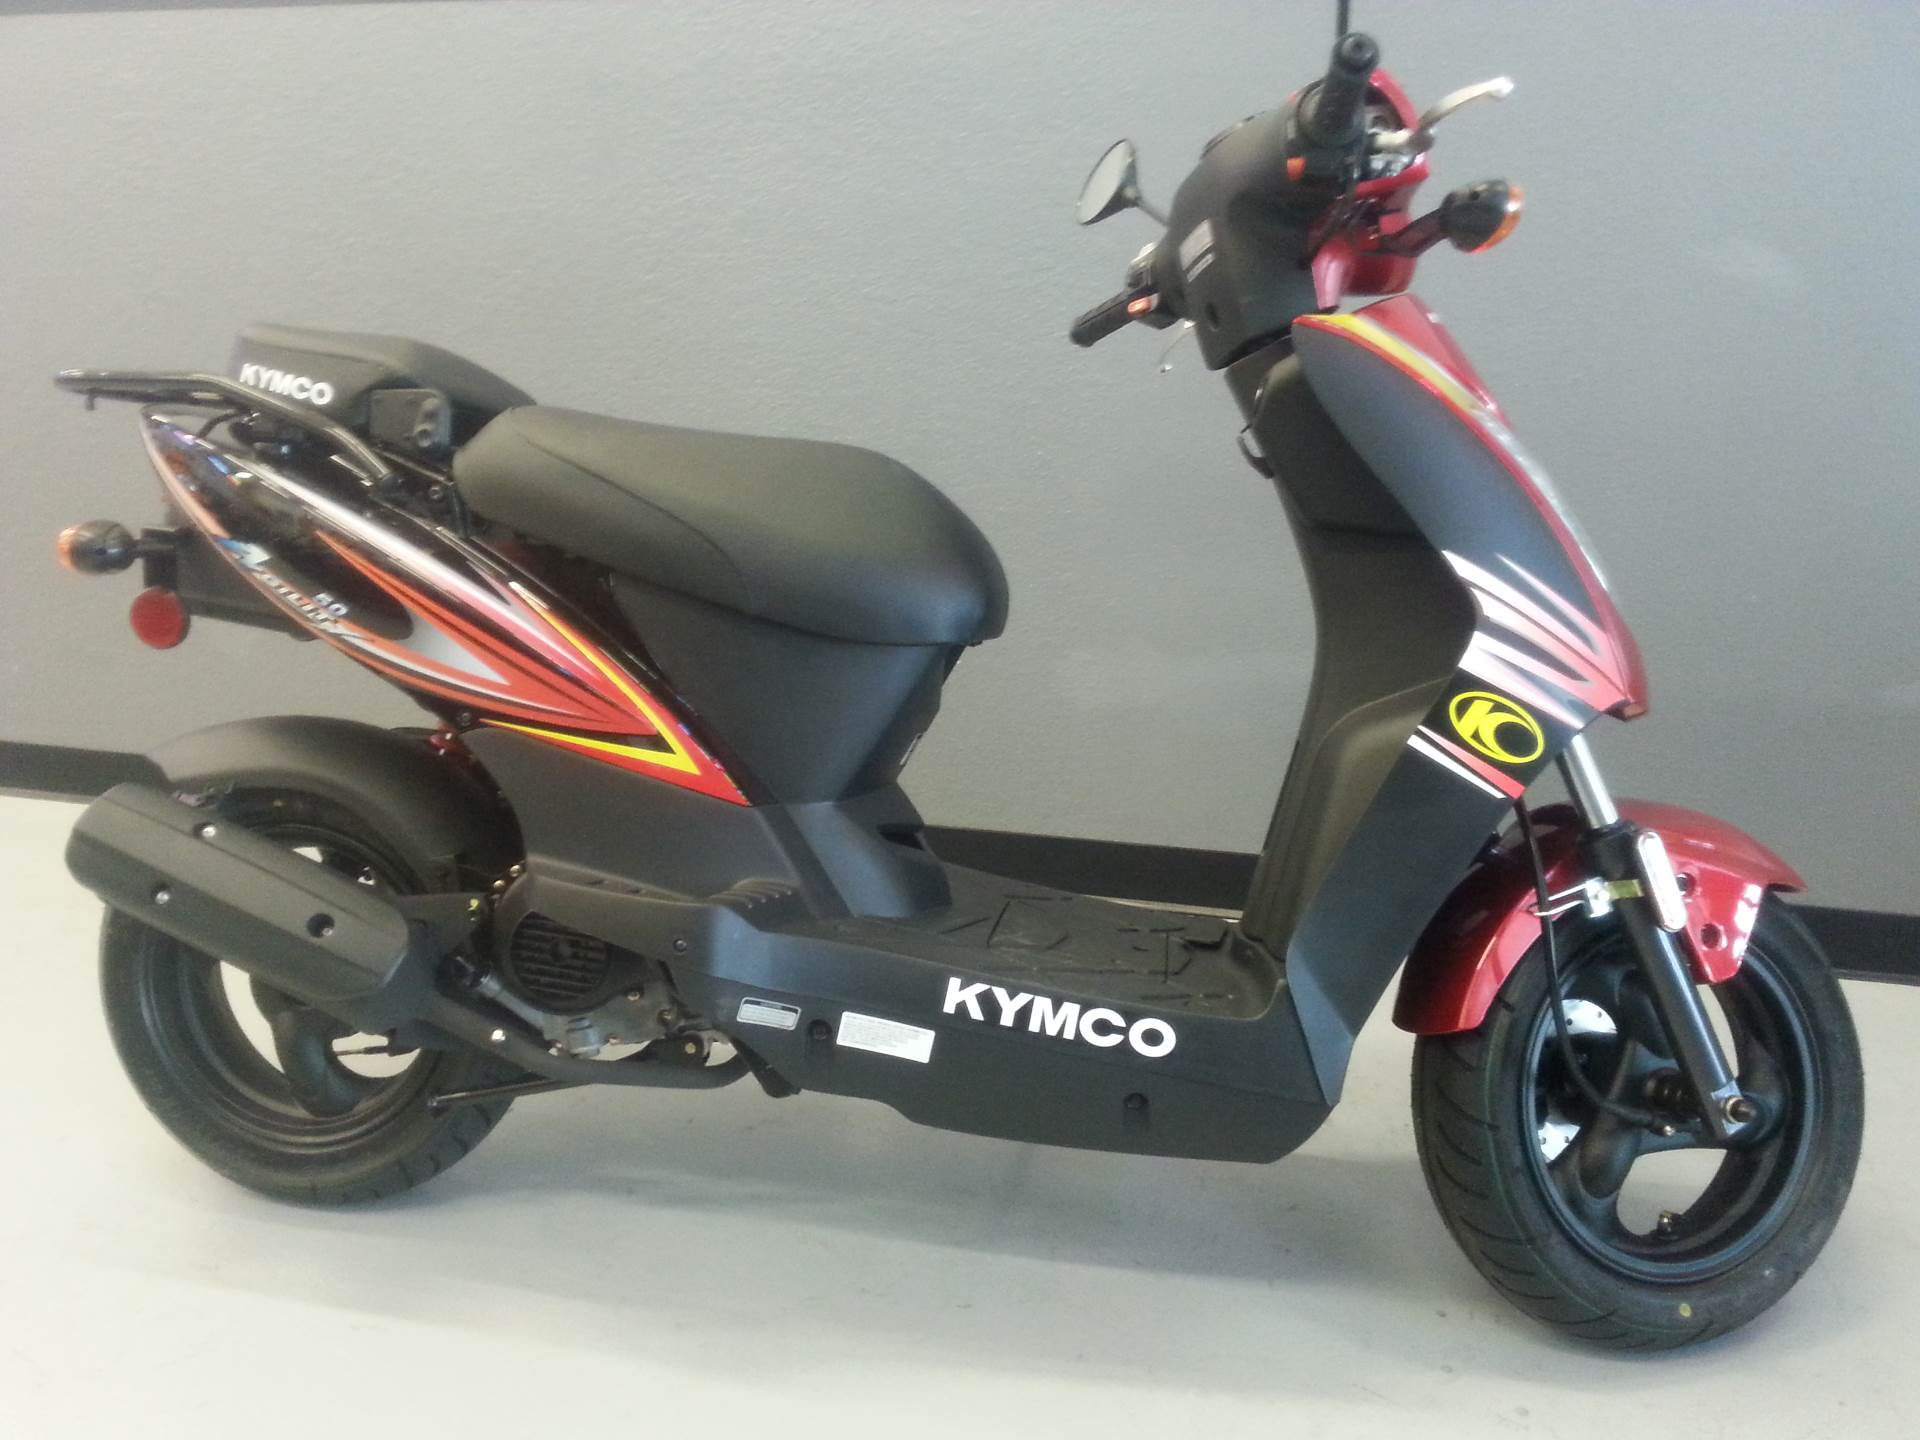 2017 Kymco Agility 50 in Albuquerque, New Mexico